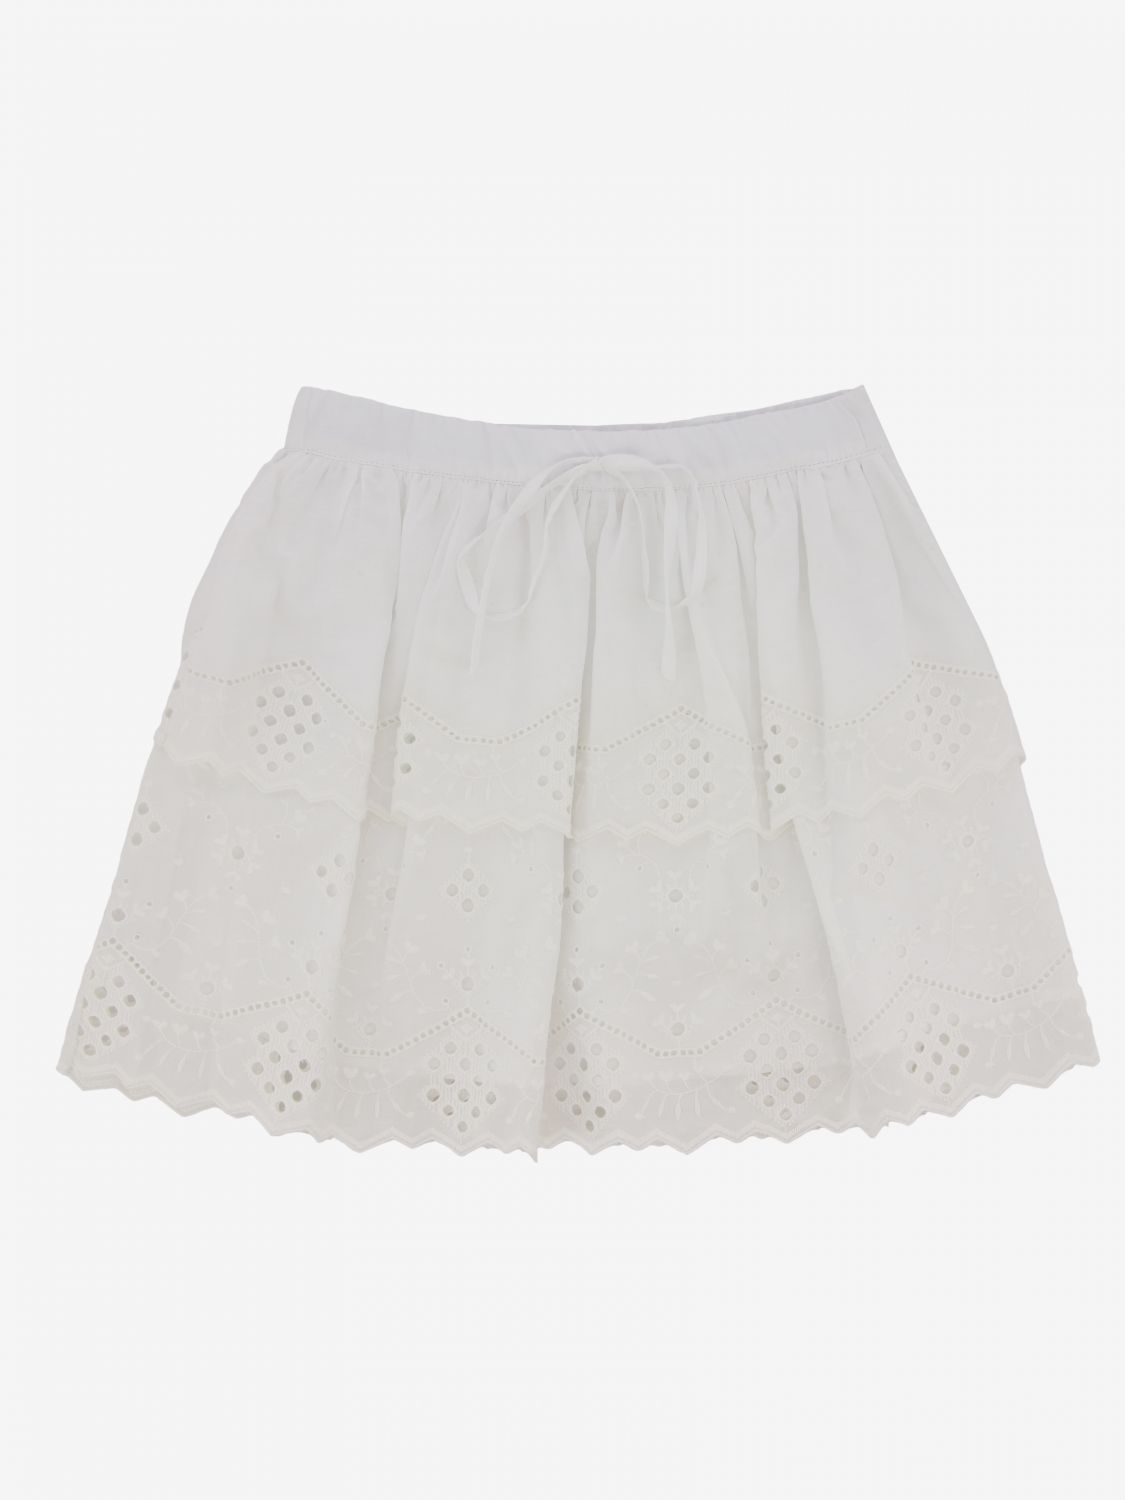 Gonna Alberta Ferretti Junior: Gonna Alberta Ferretti Junior in Sangallo bianco 1